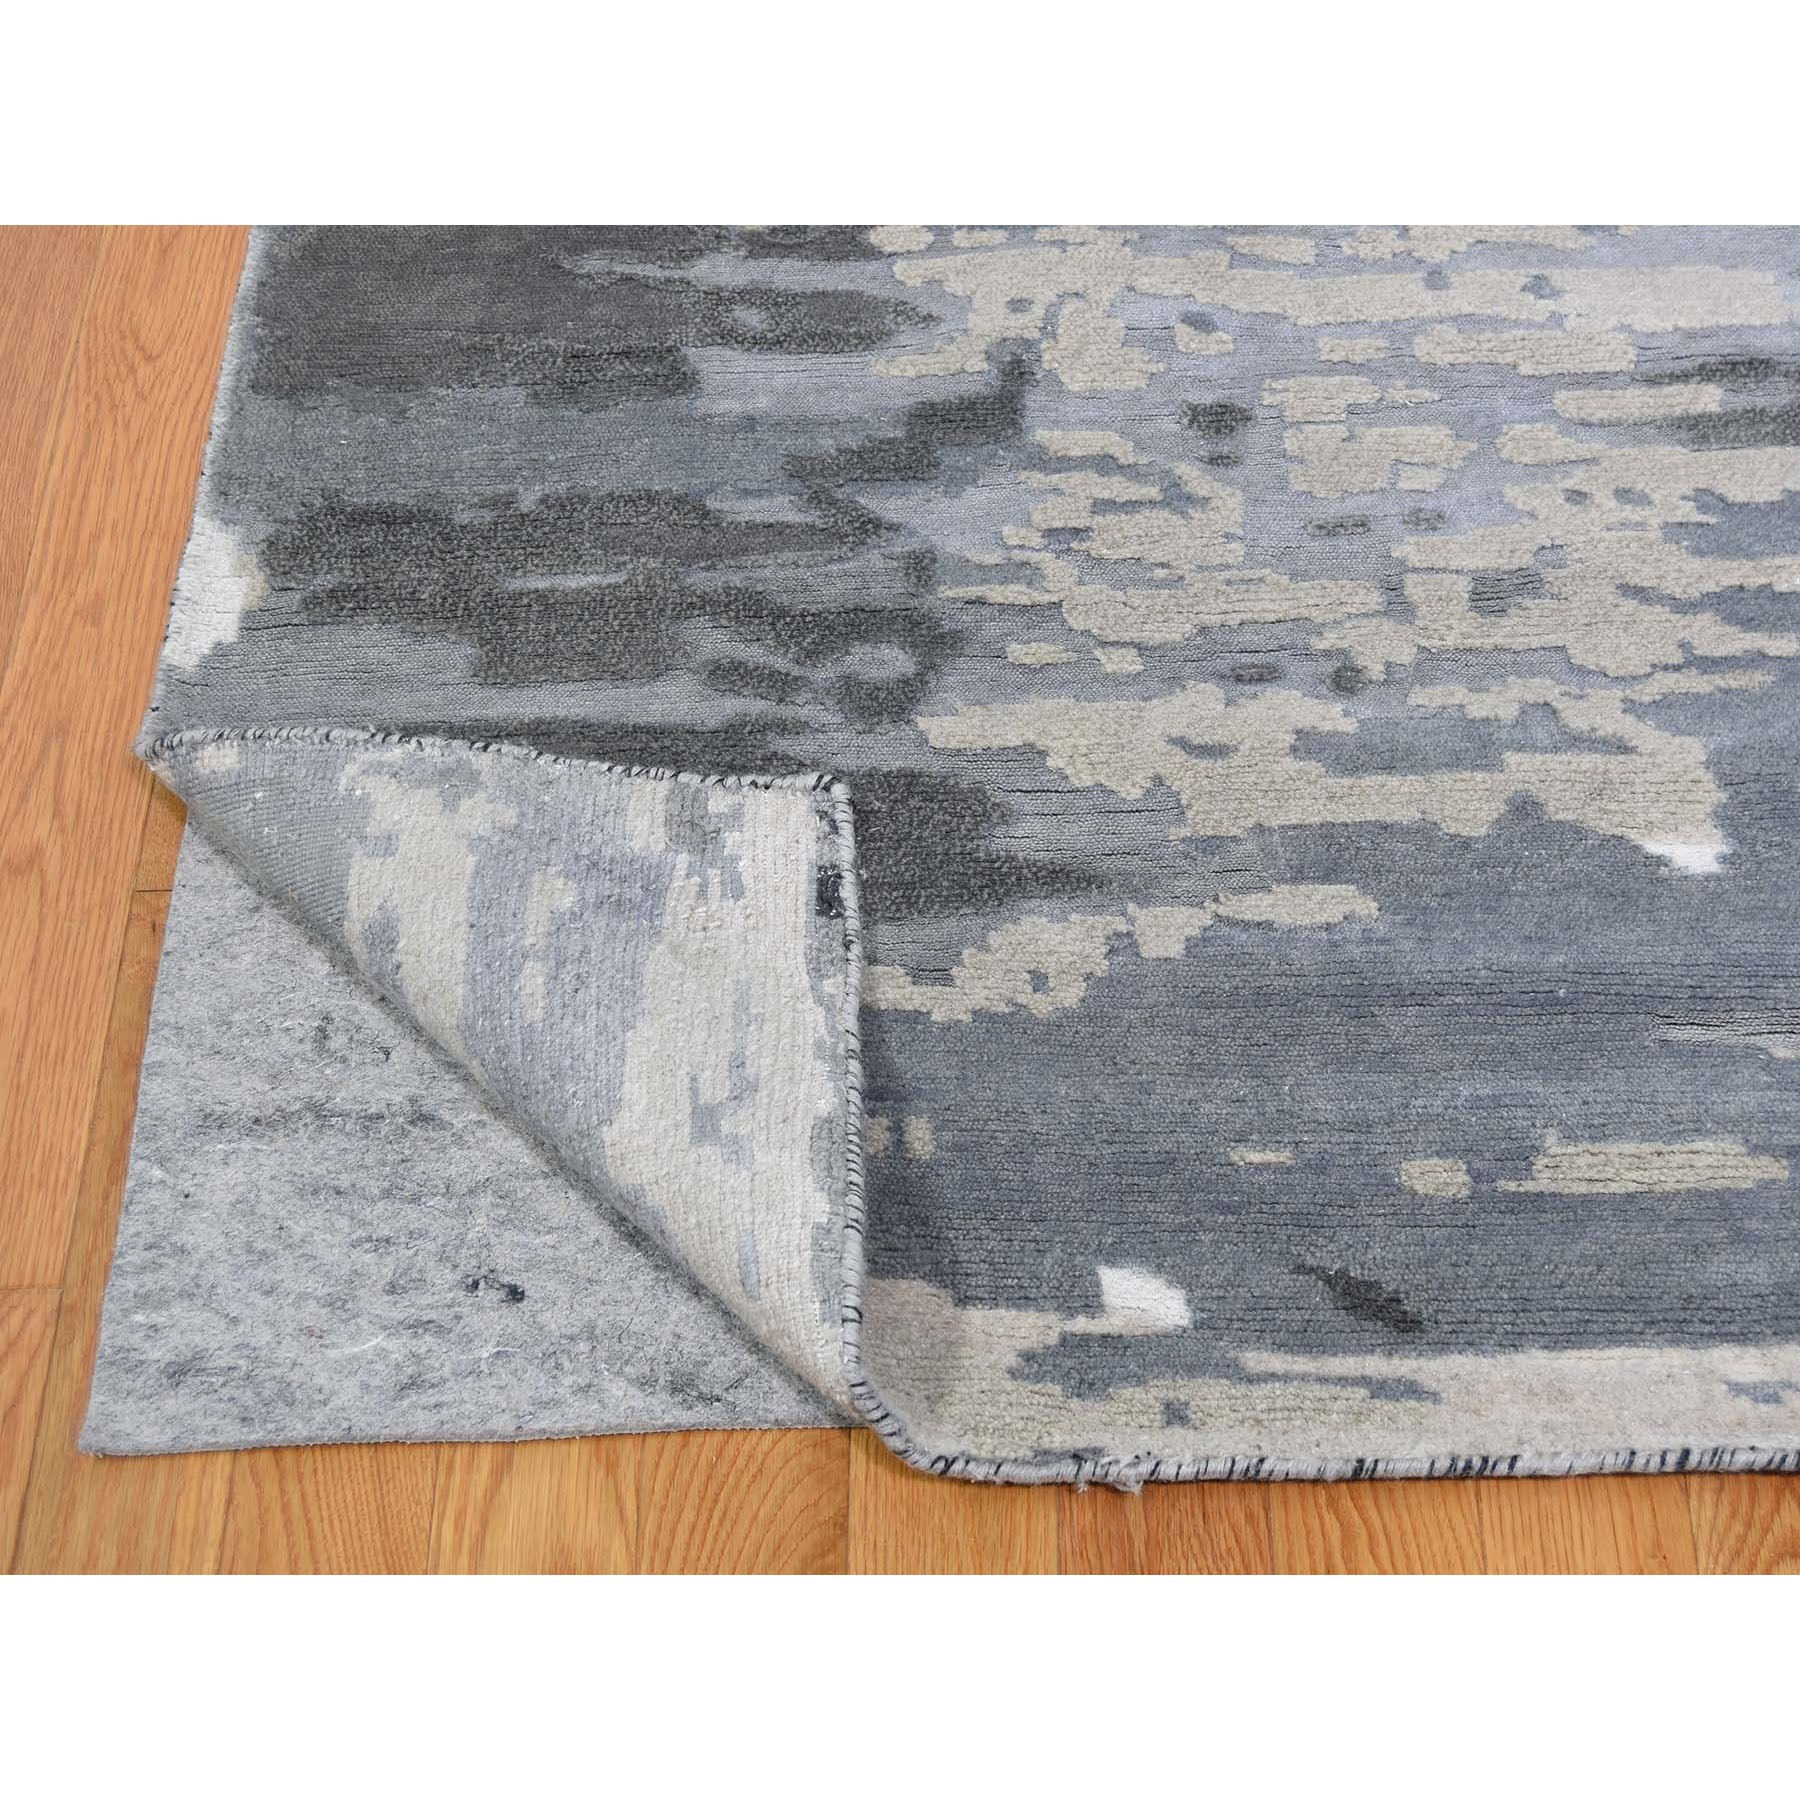 12'x15' Oversize Hi-Lo Pile Abstract Design Wool And Silk Hand Knotted Oriental Rug